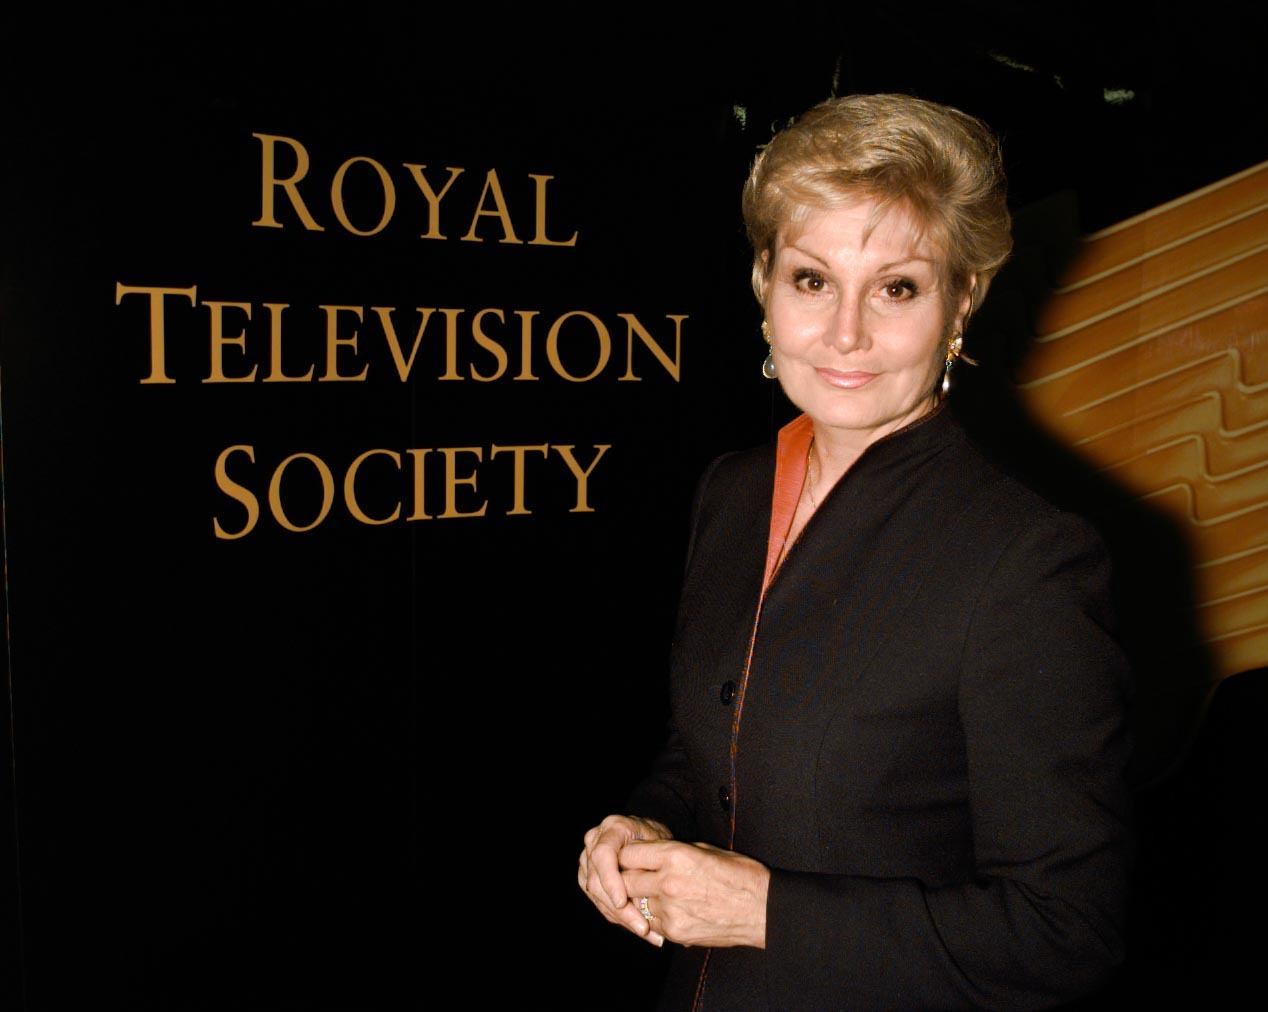 Angela Rippon at the British Academy of Film and Television Arts in London, where she hosted a ceremony in 2000. (Peter Jordan/PA)